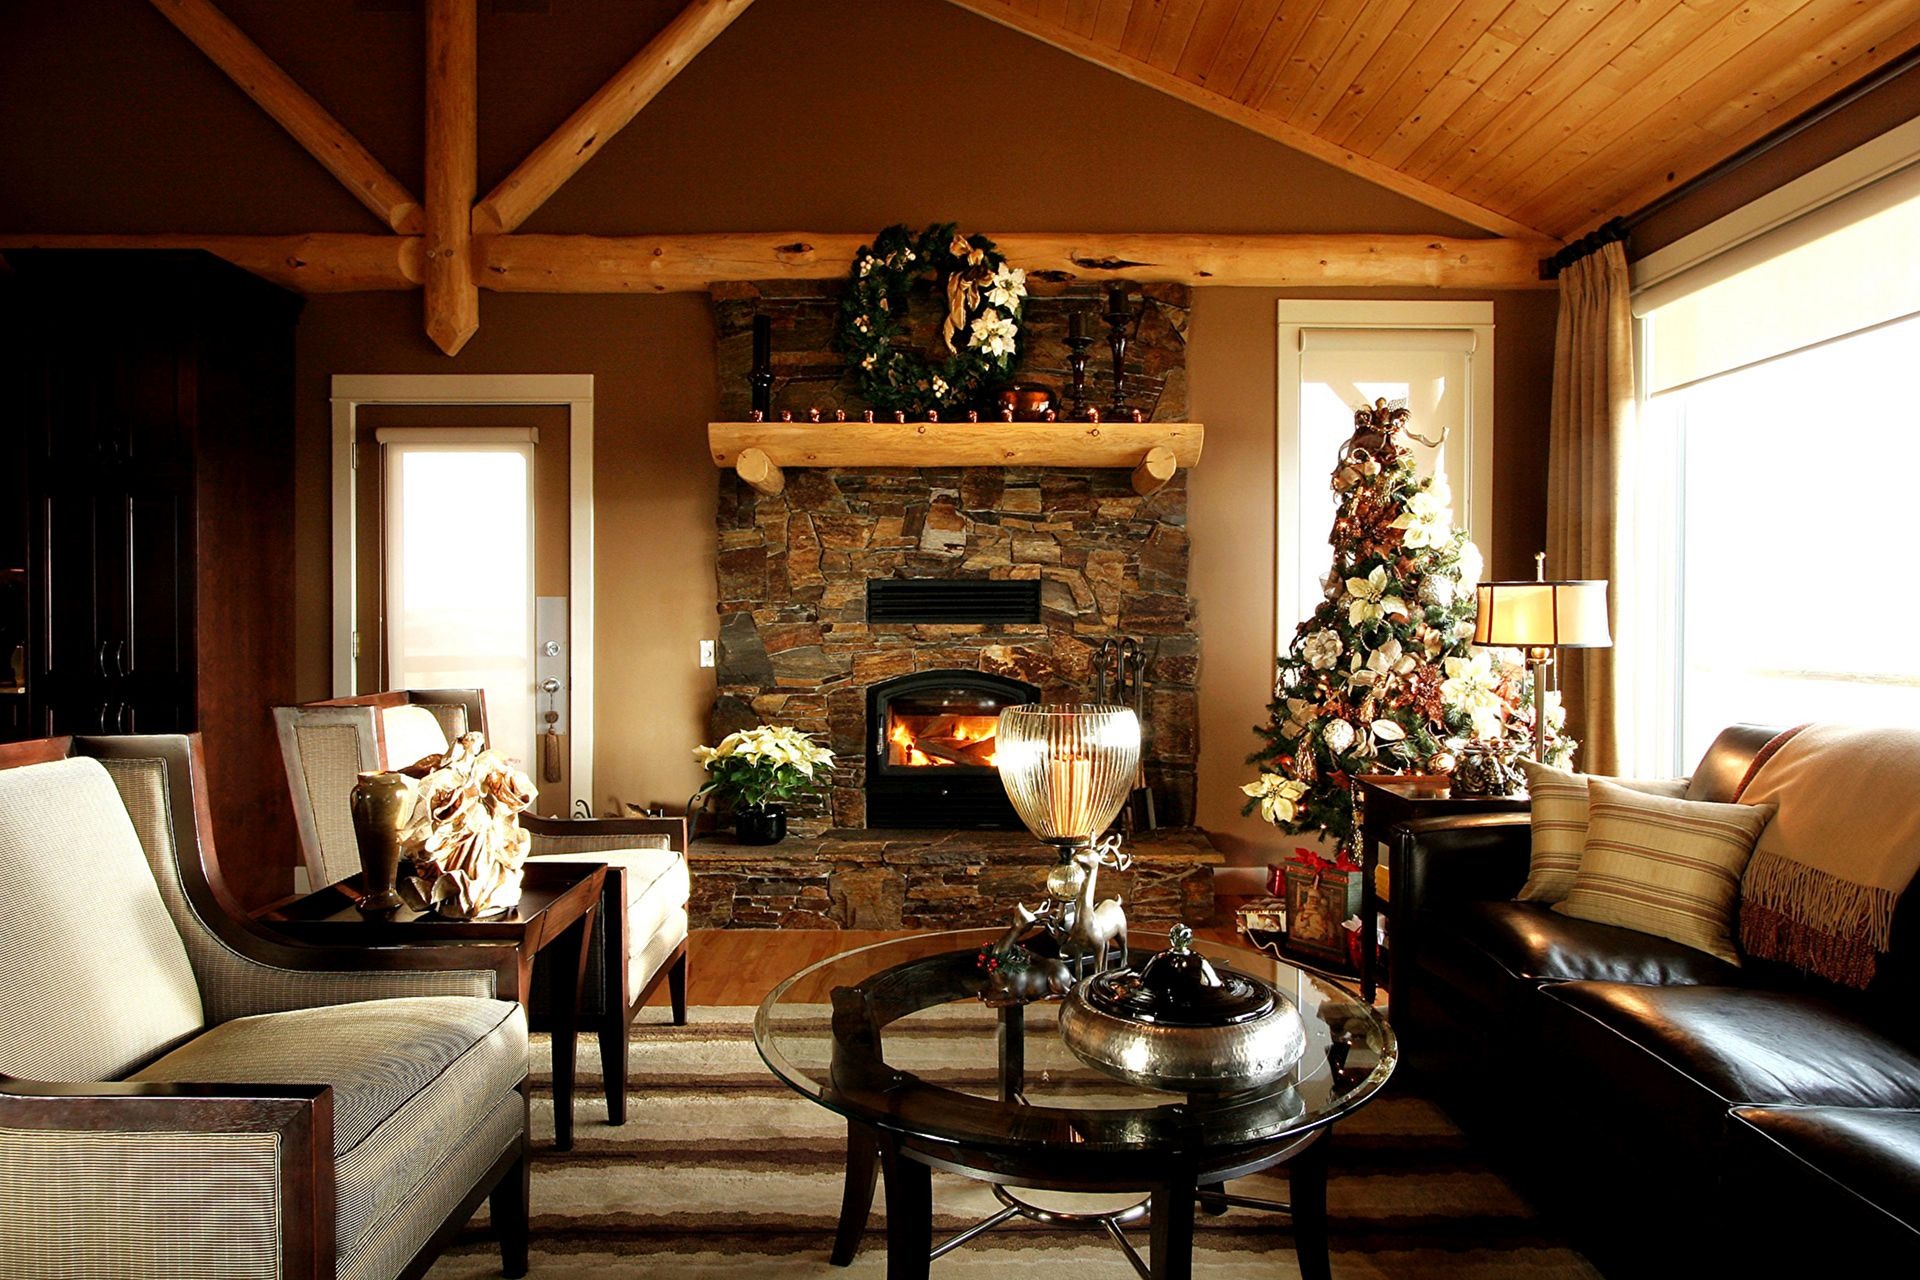 Living Room Christmas With Fireplace 4